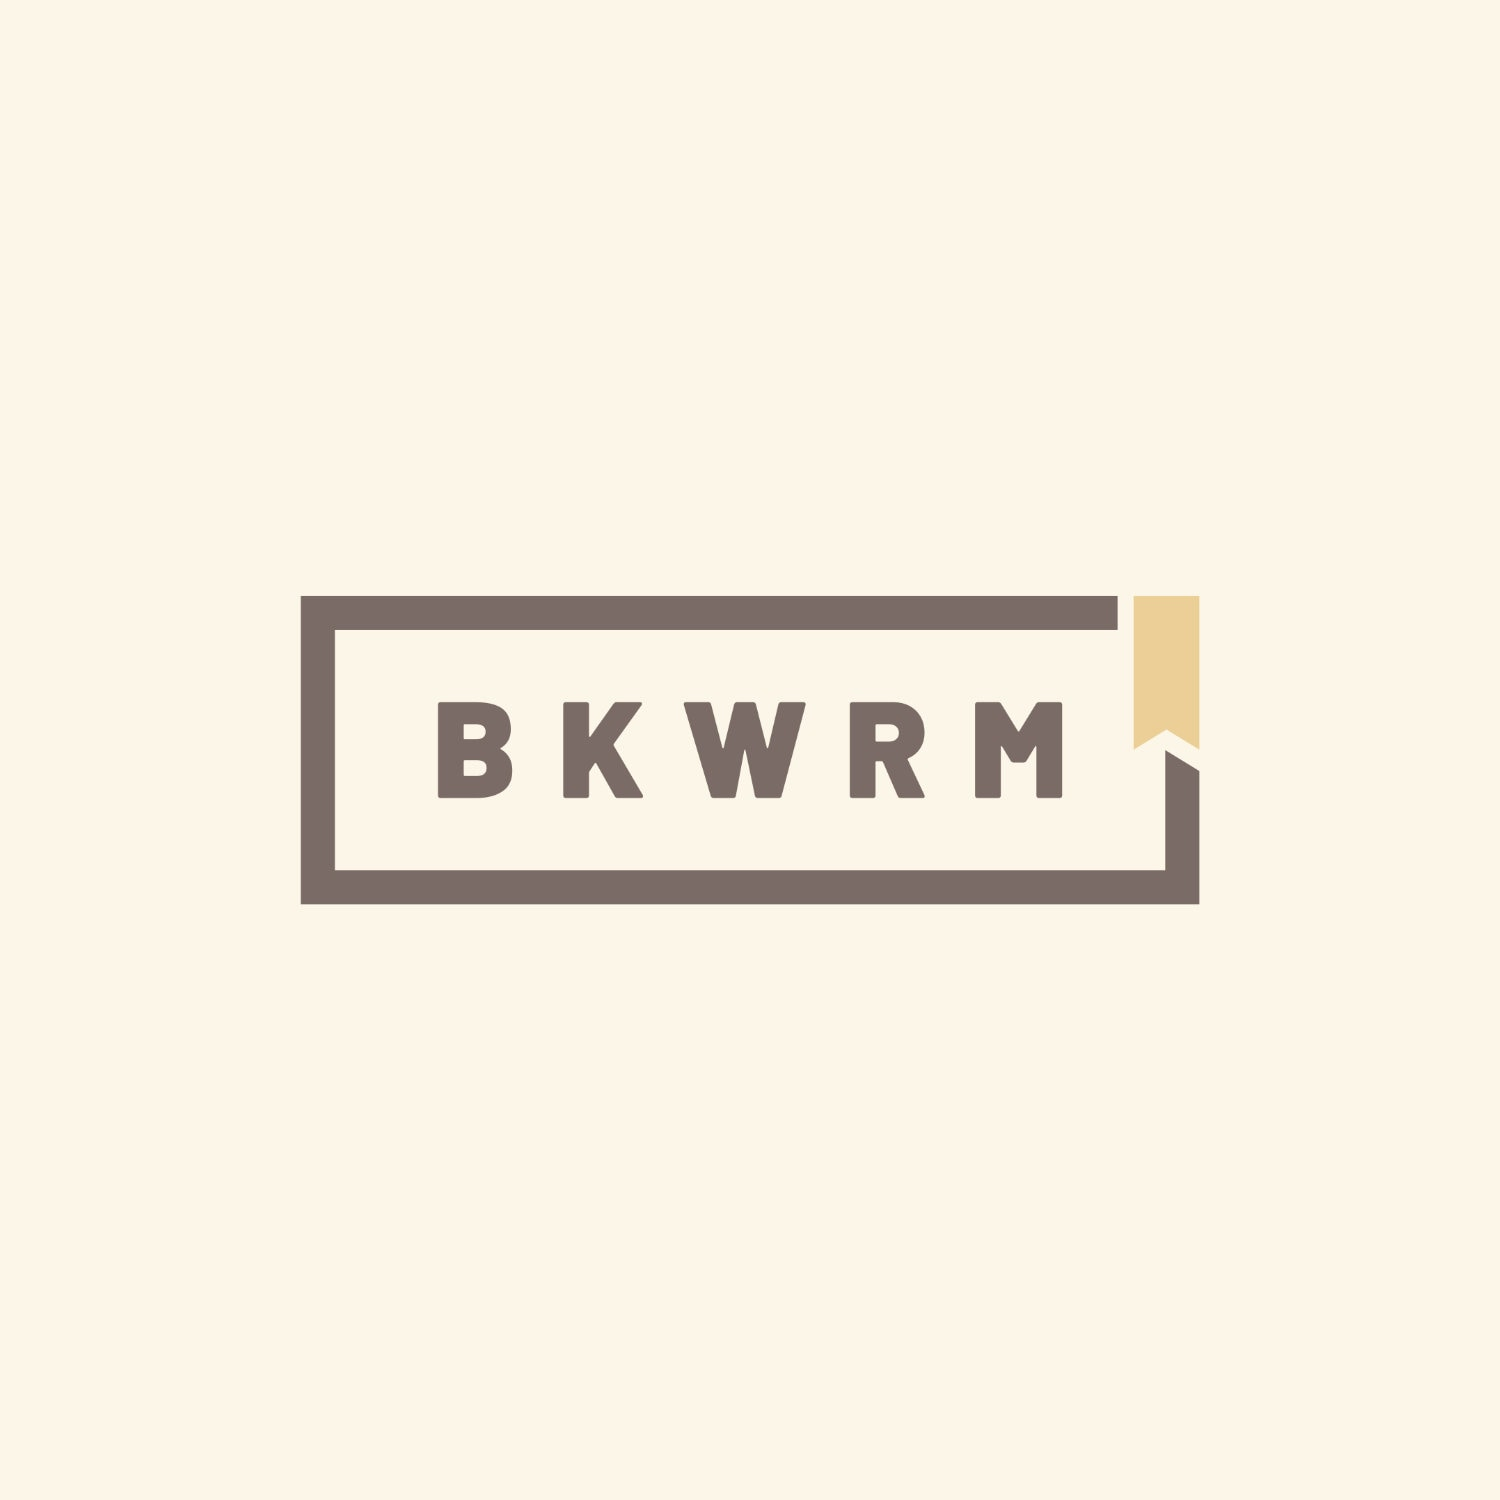 BKWRM - bookworm - bookish images to share - design by Piotr Kowalczyk